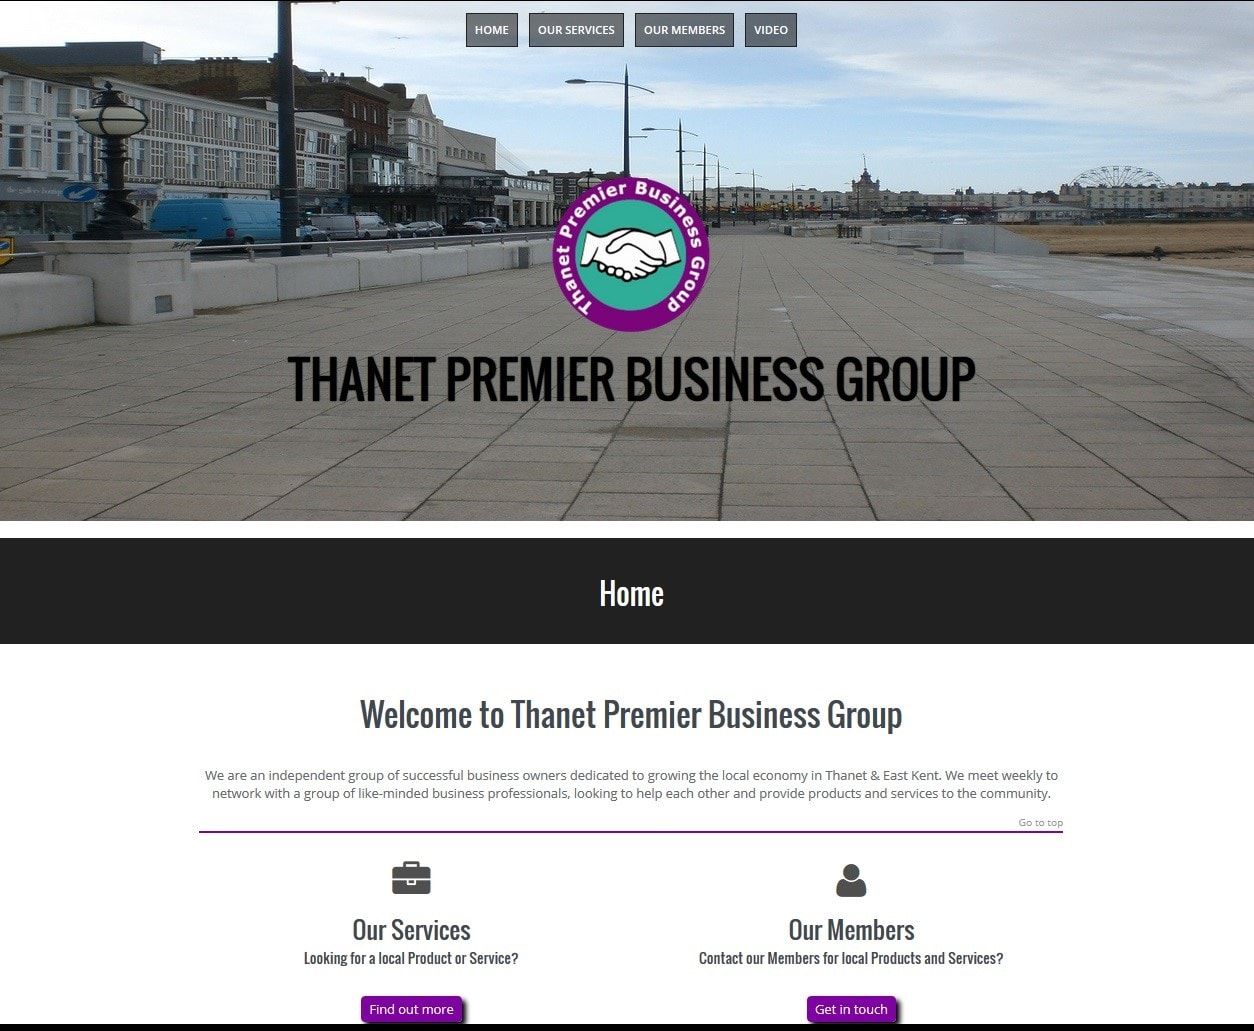 Thanet Premier Business Club Website supplied by Managed Web Services